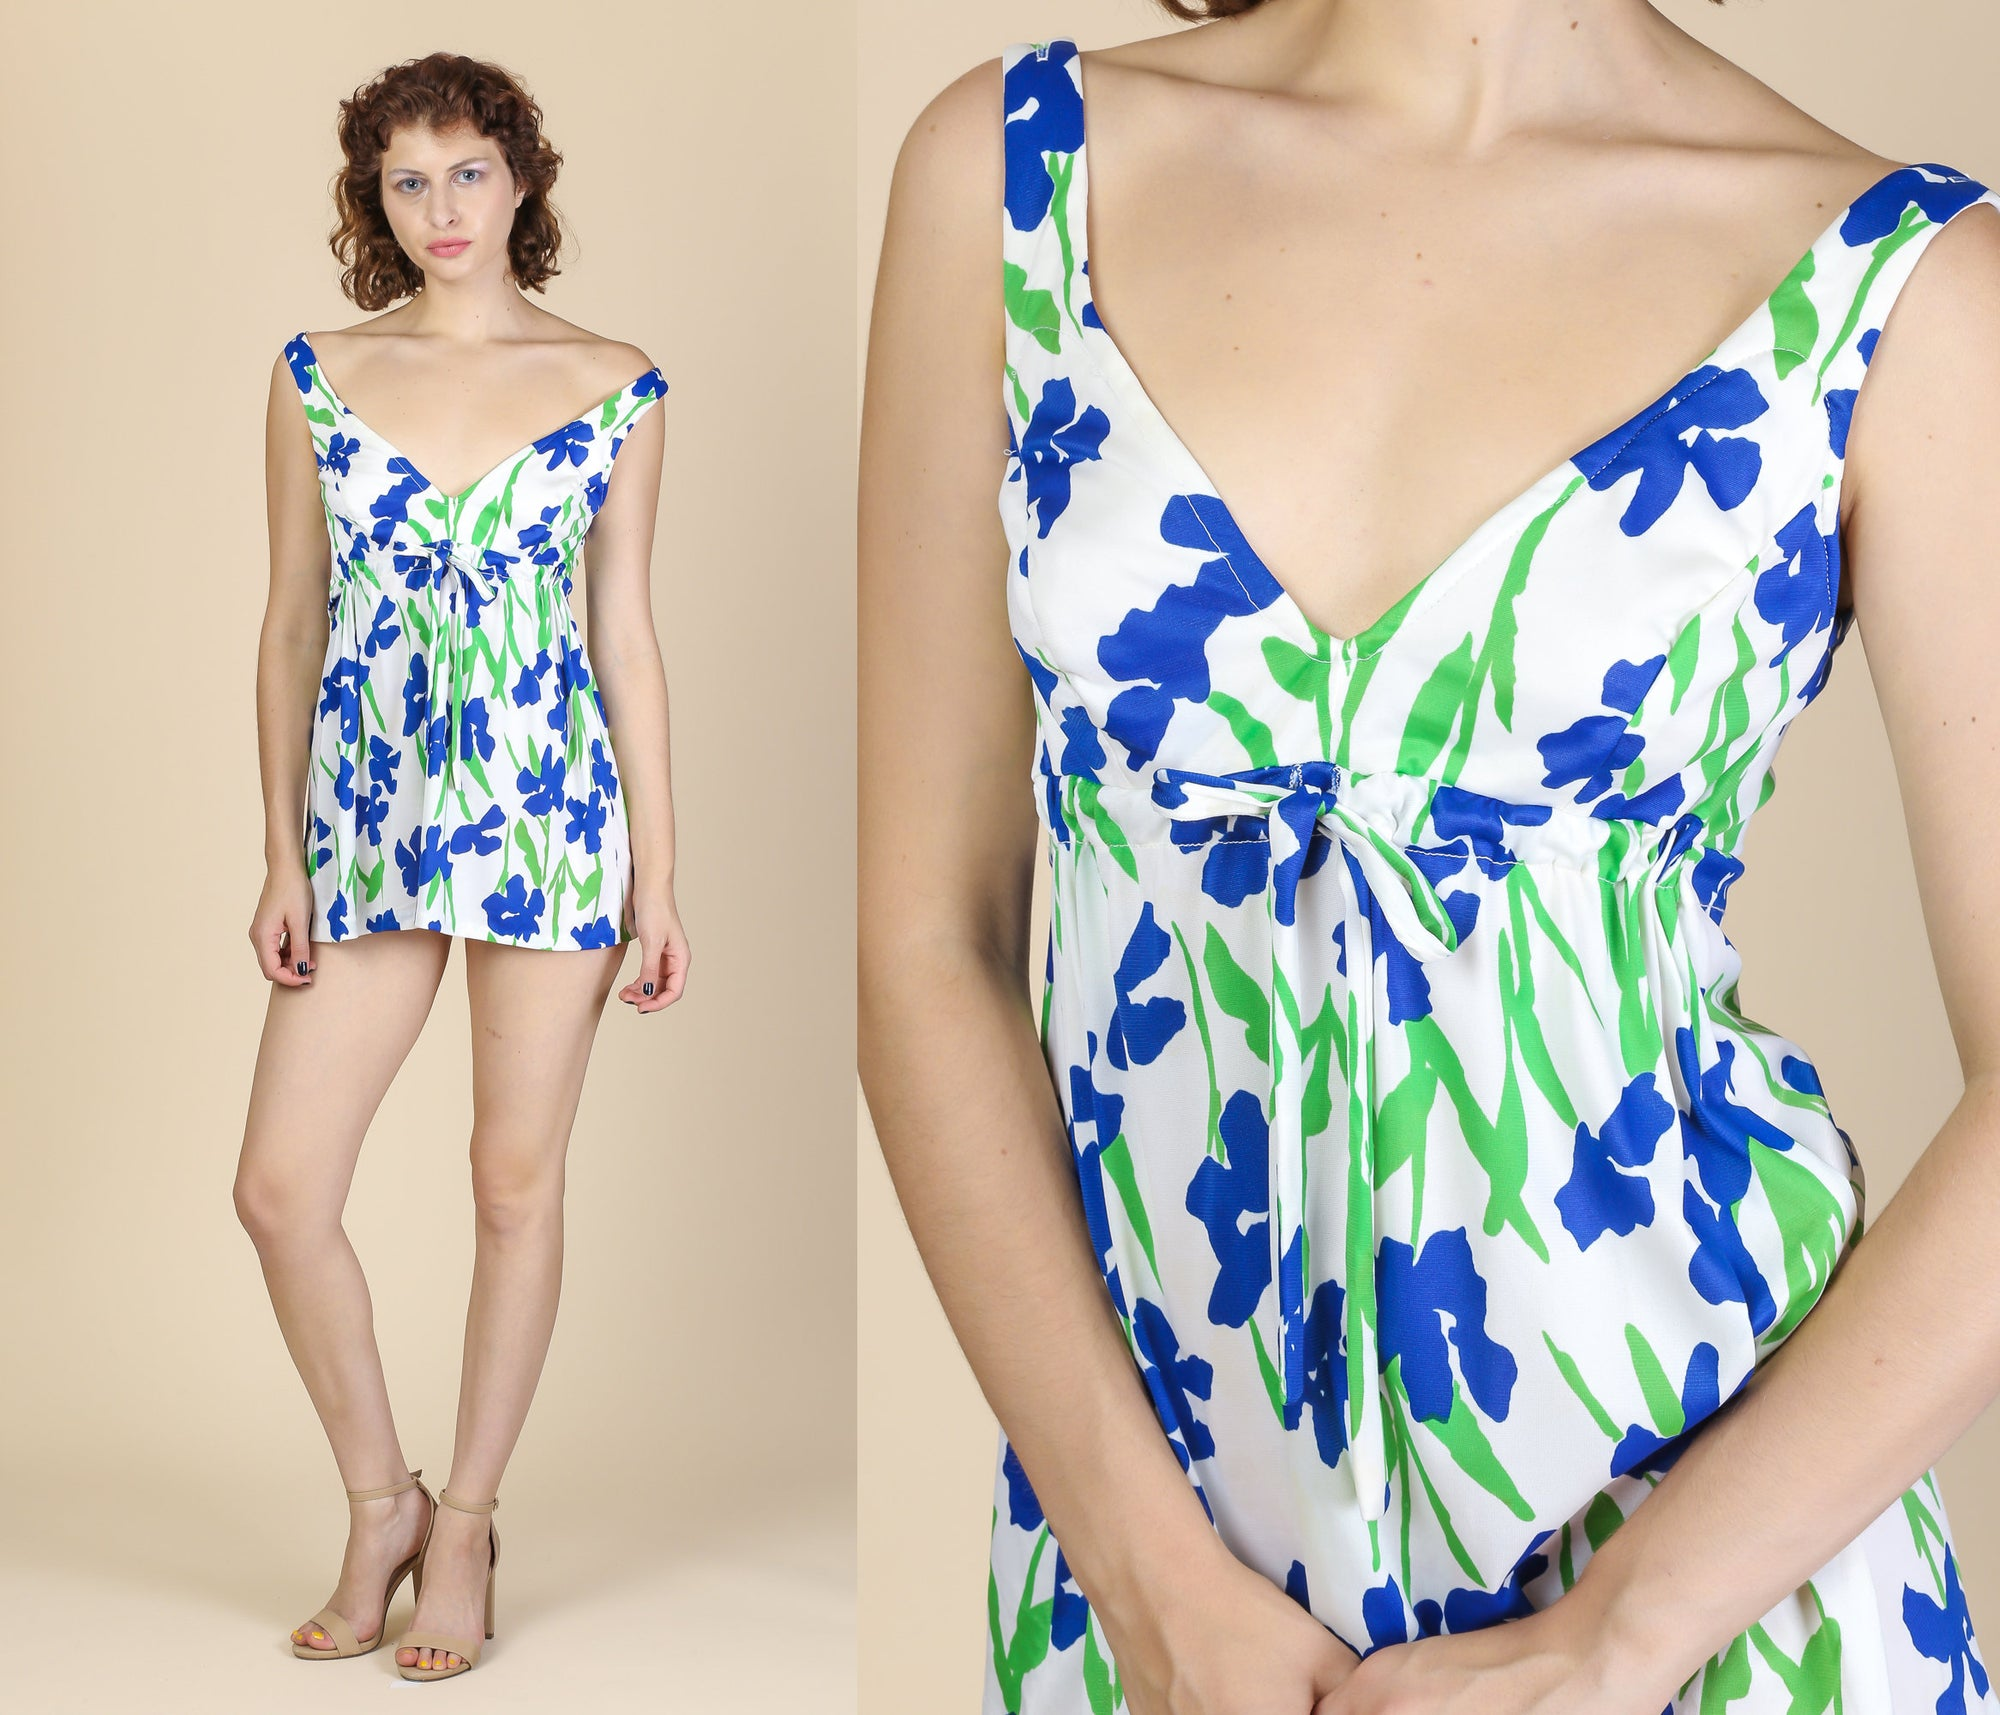 Vintage Floral Swim Dress - Medium to Large